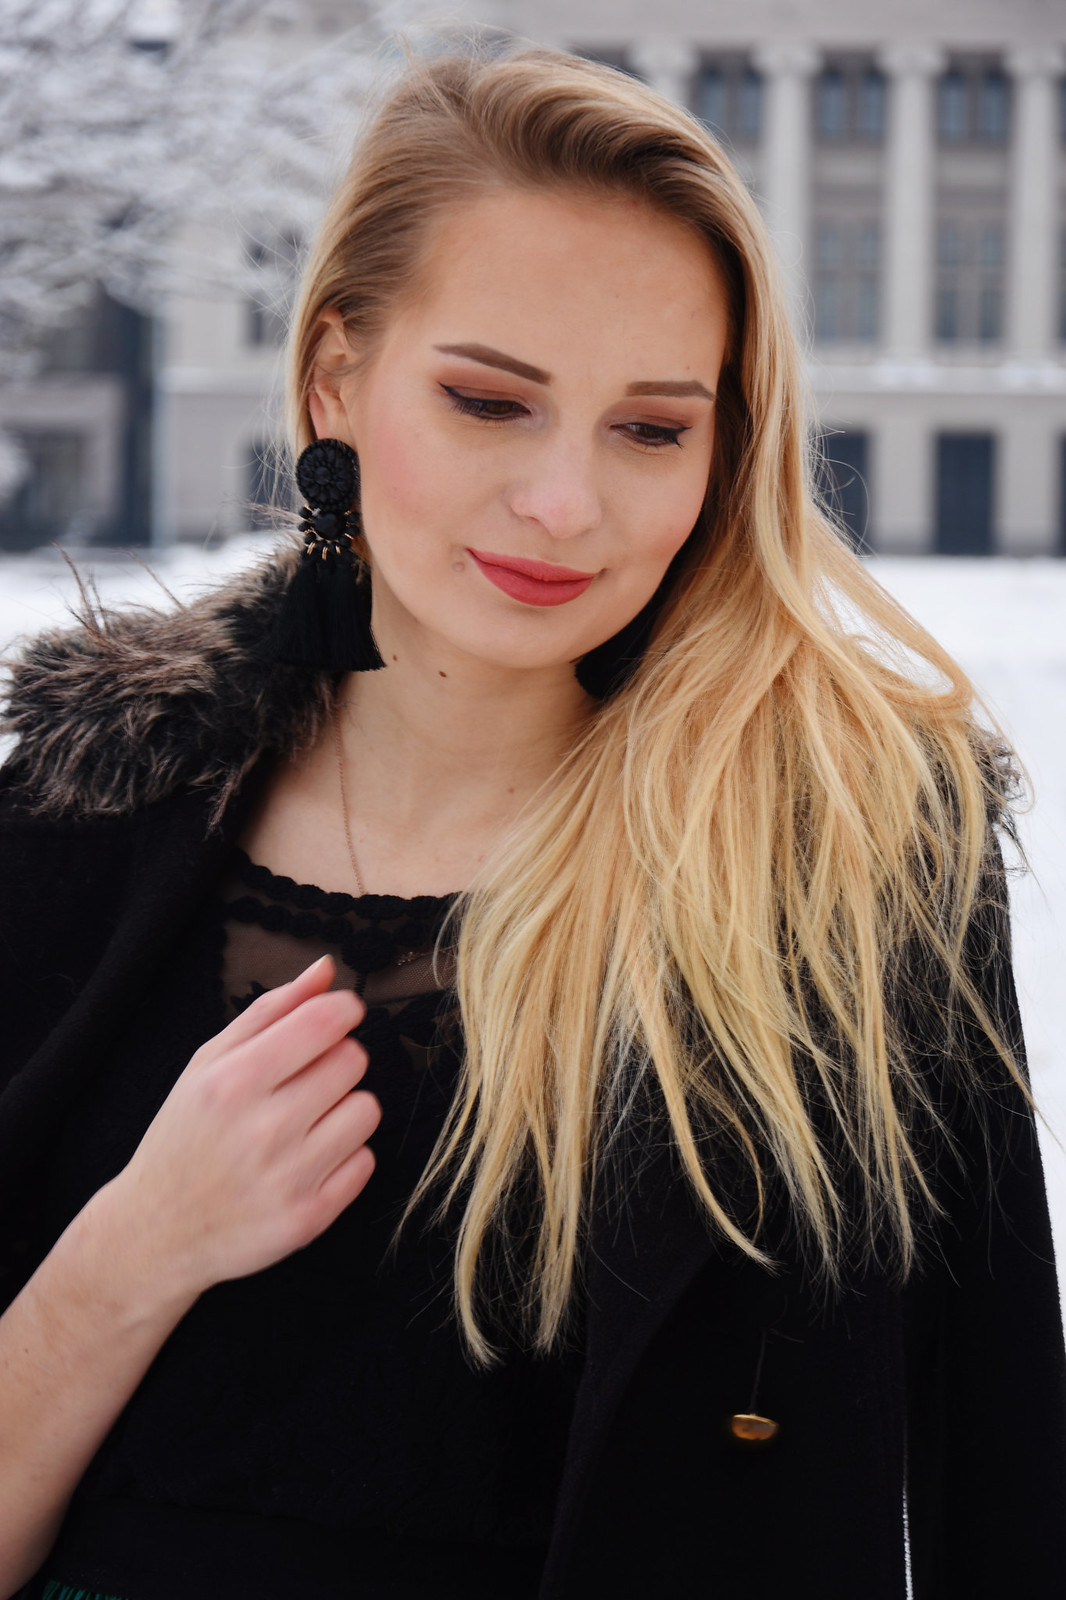 Blonde Latvian girl